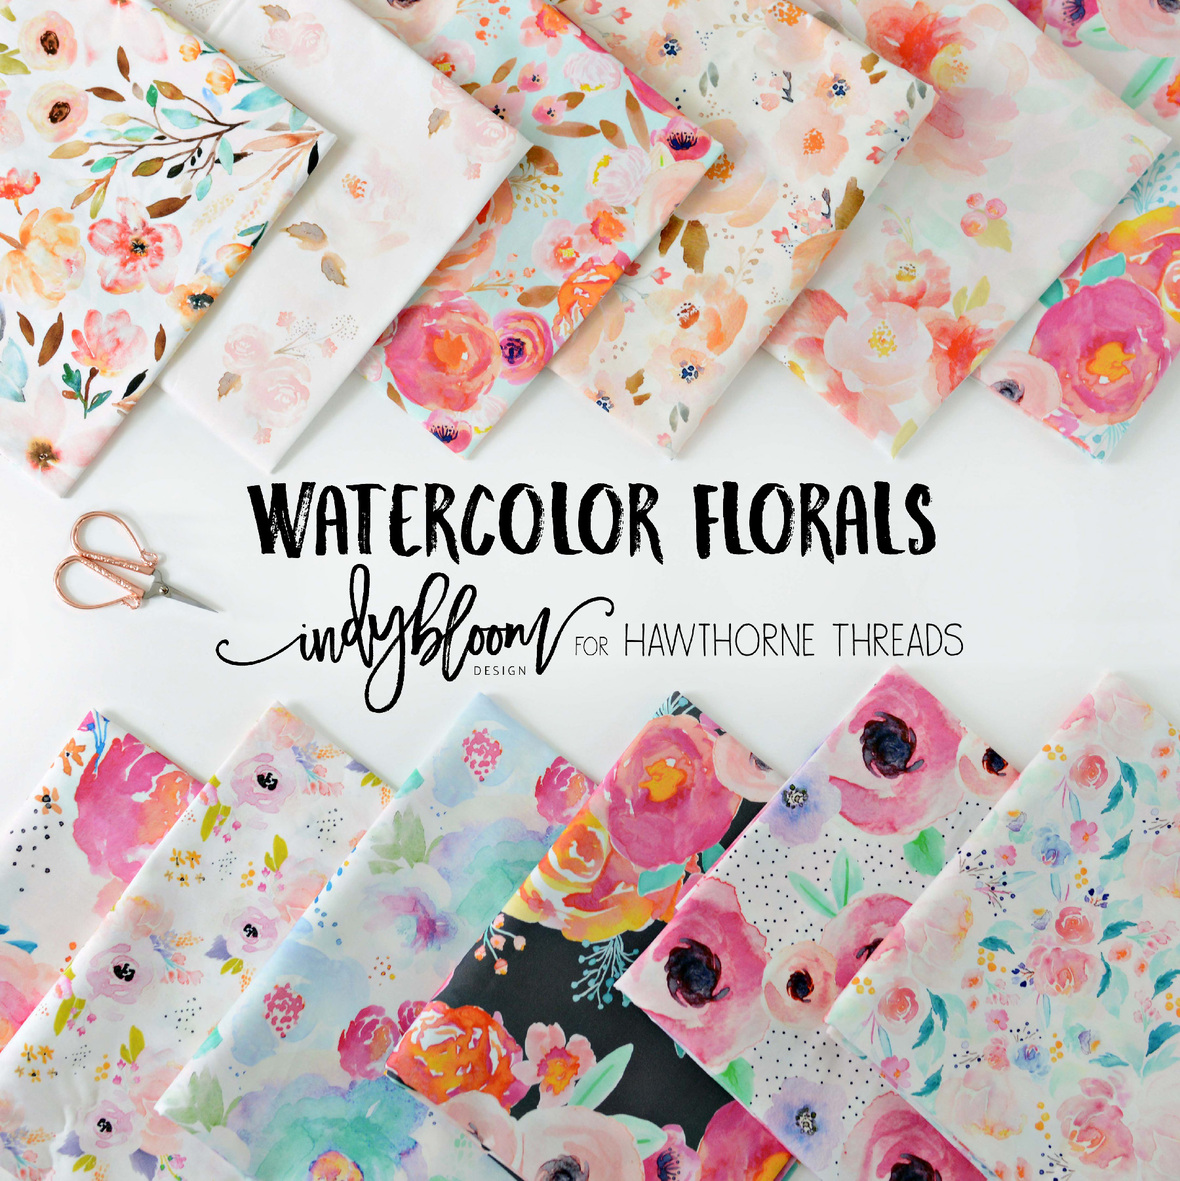 Watercolor Florals Fabric Indy Bloom for Hawthorne Threads Final Poster  6x6